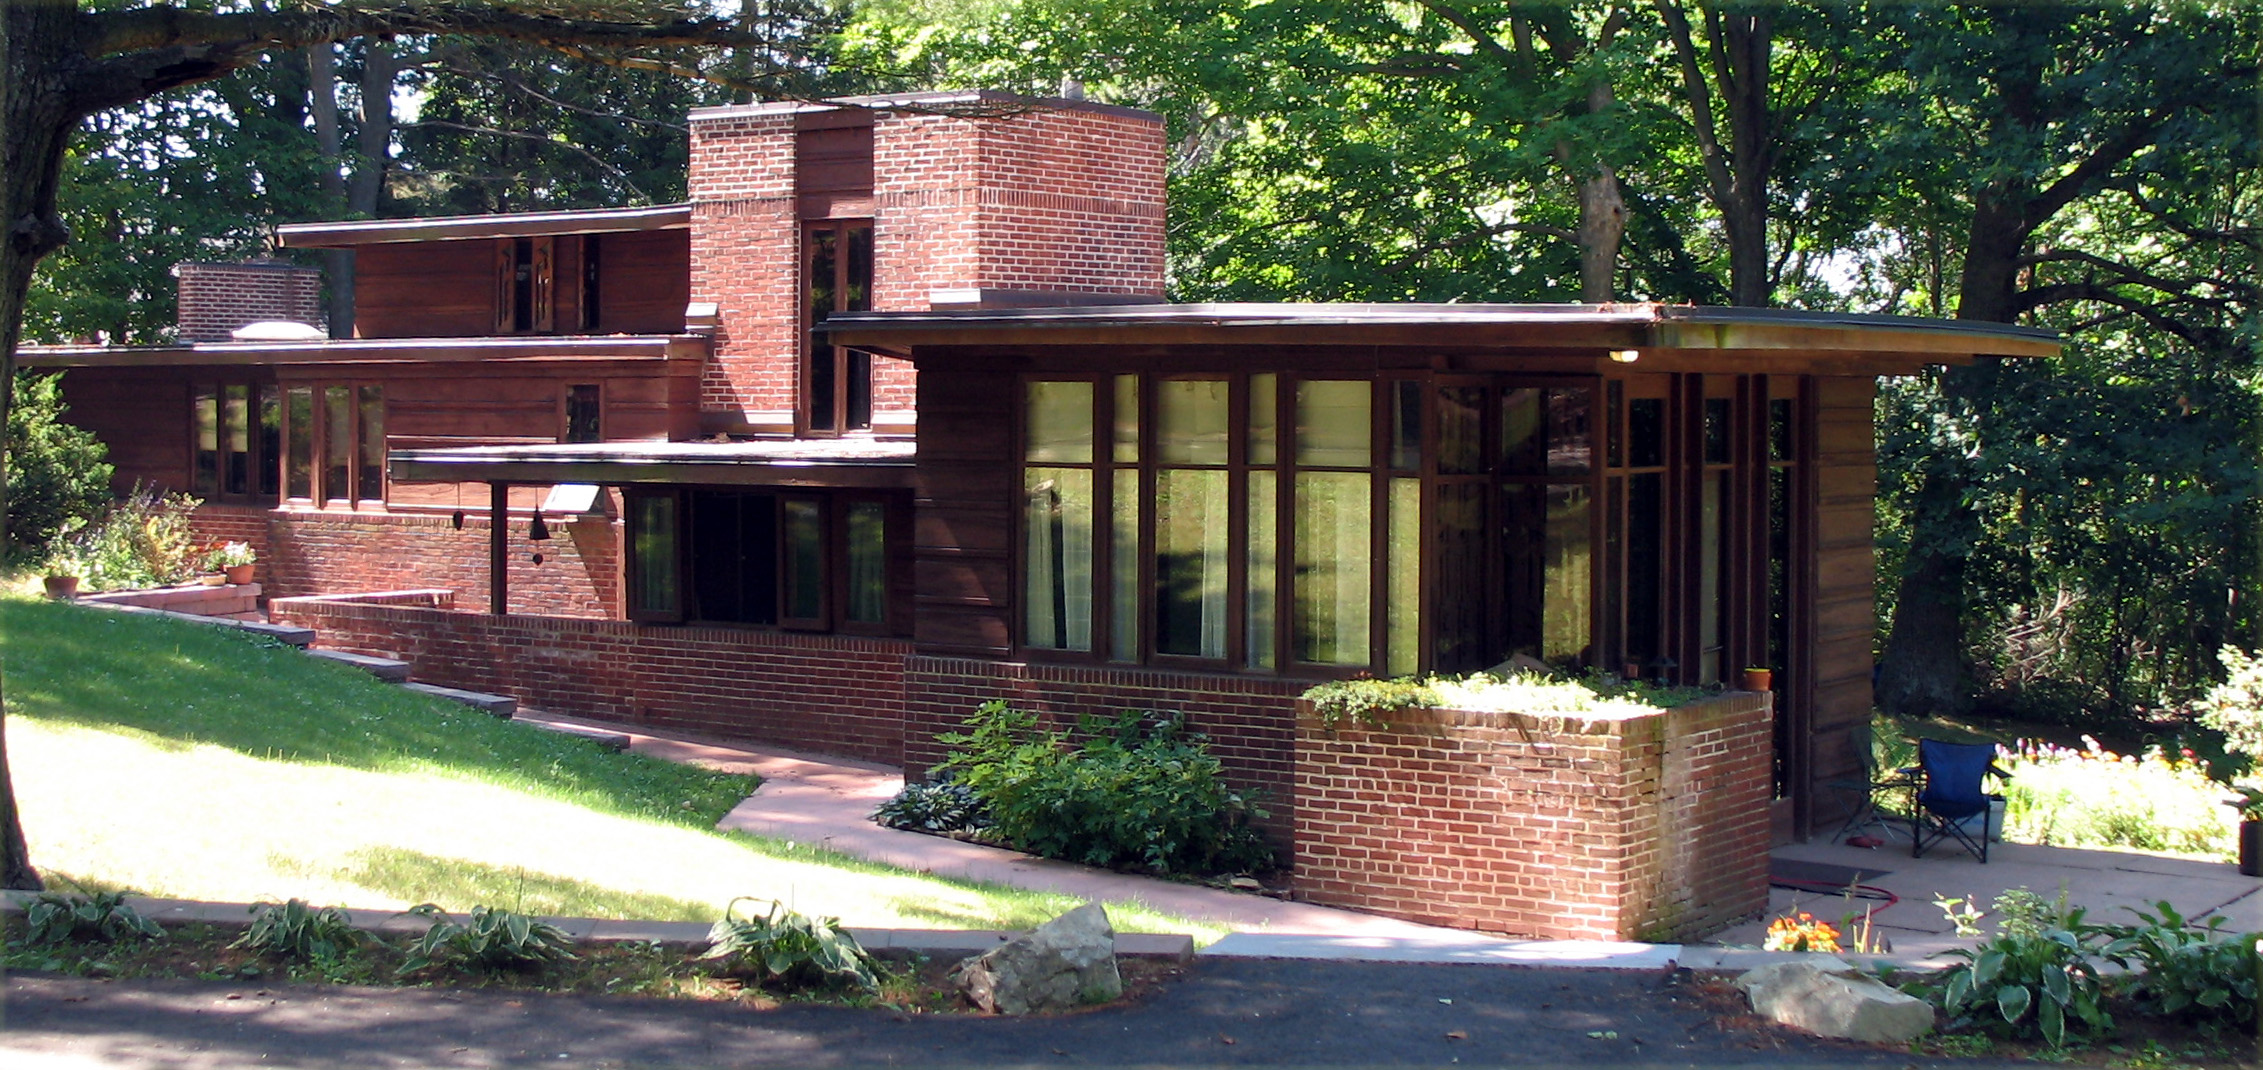 Usonian arbor builders bend home builders for Frank lloyd wright usonian home plans